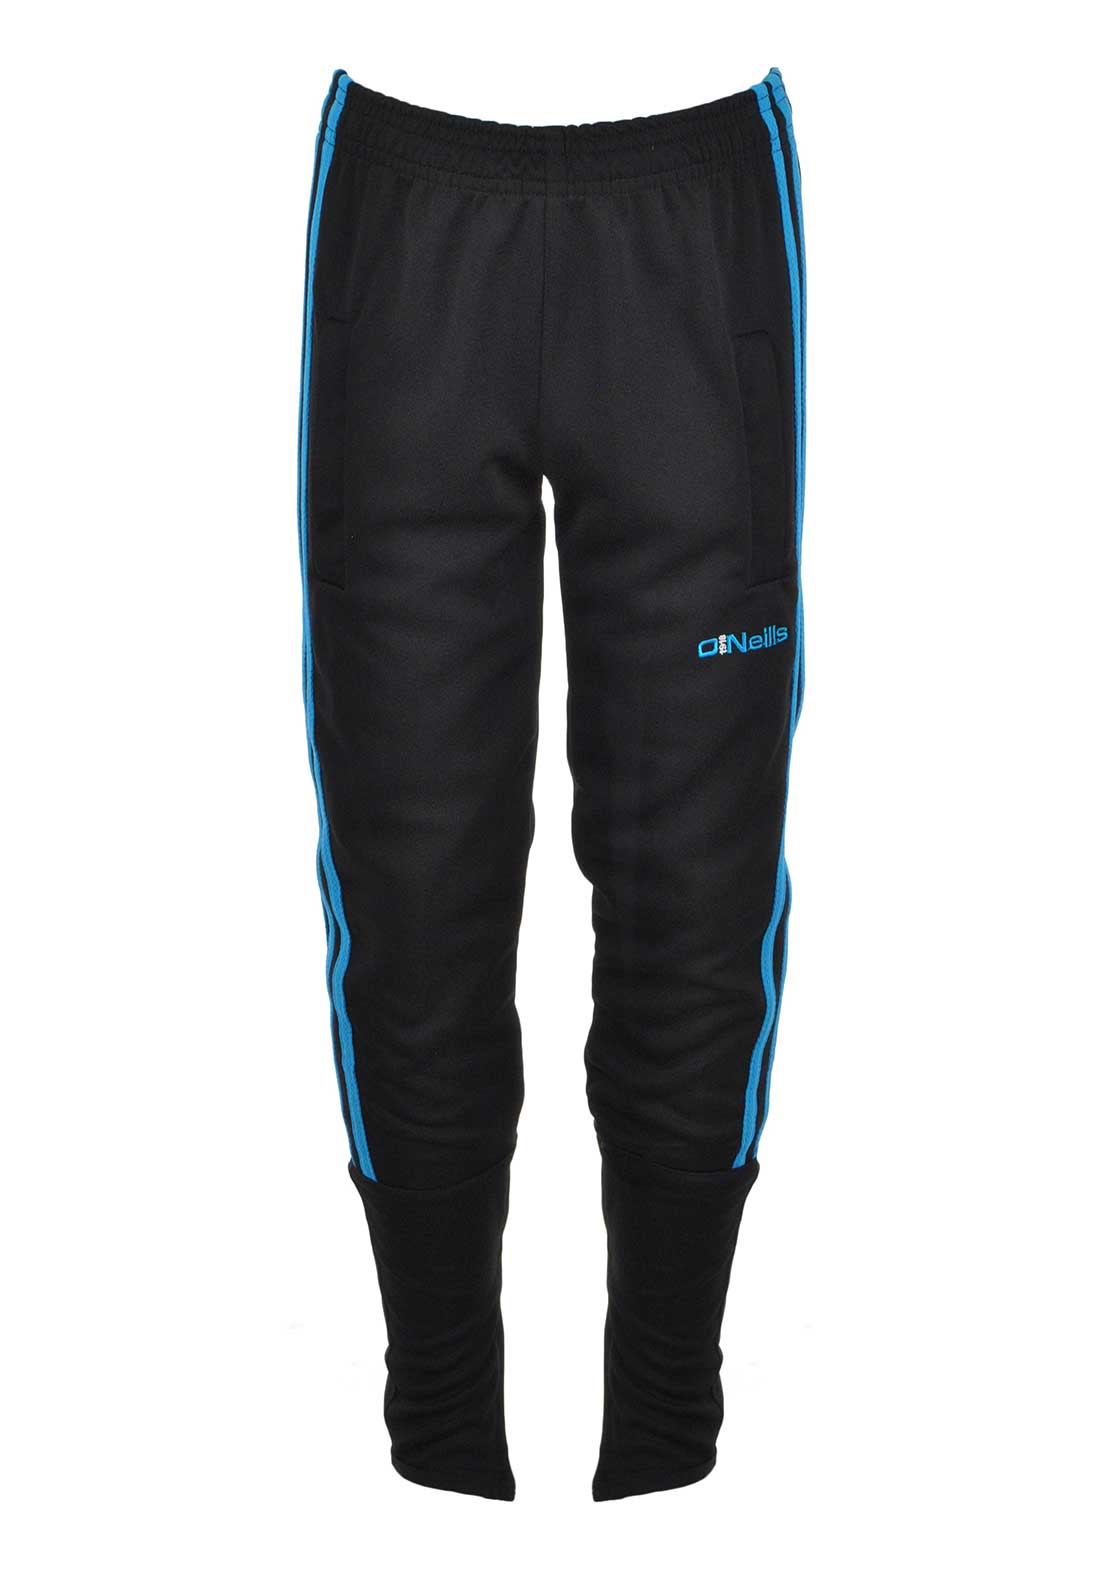 O'Neill's Kids Darwin Training Pants, Black and Blue